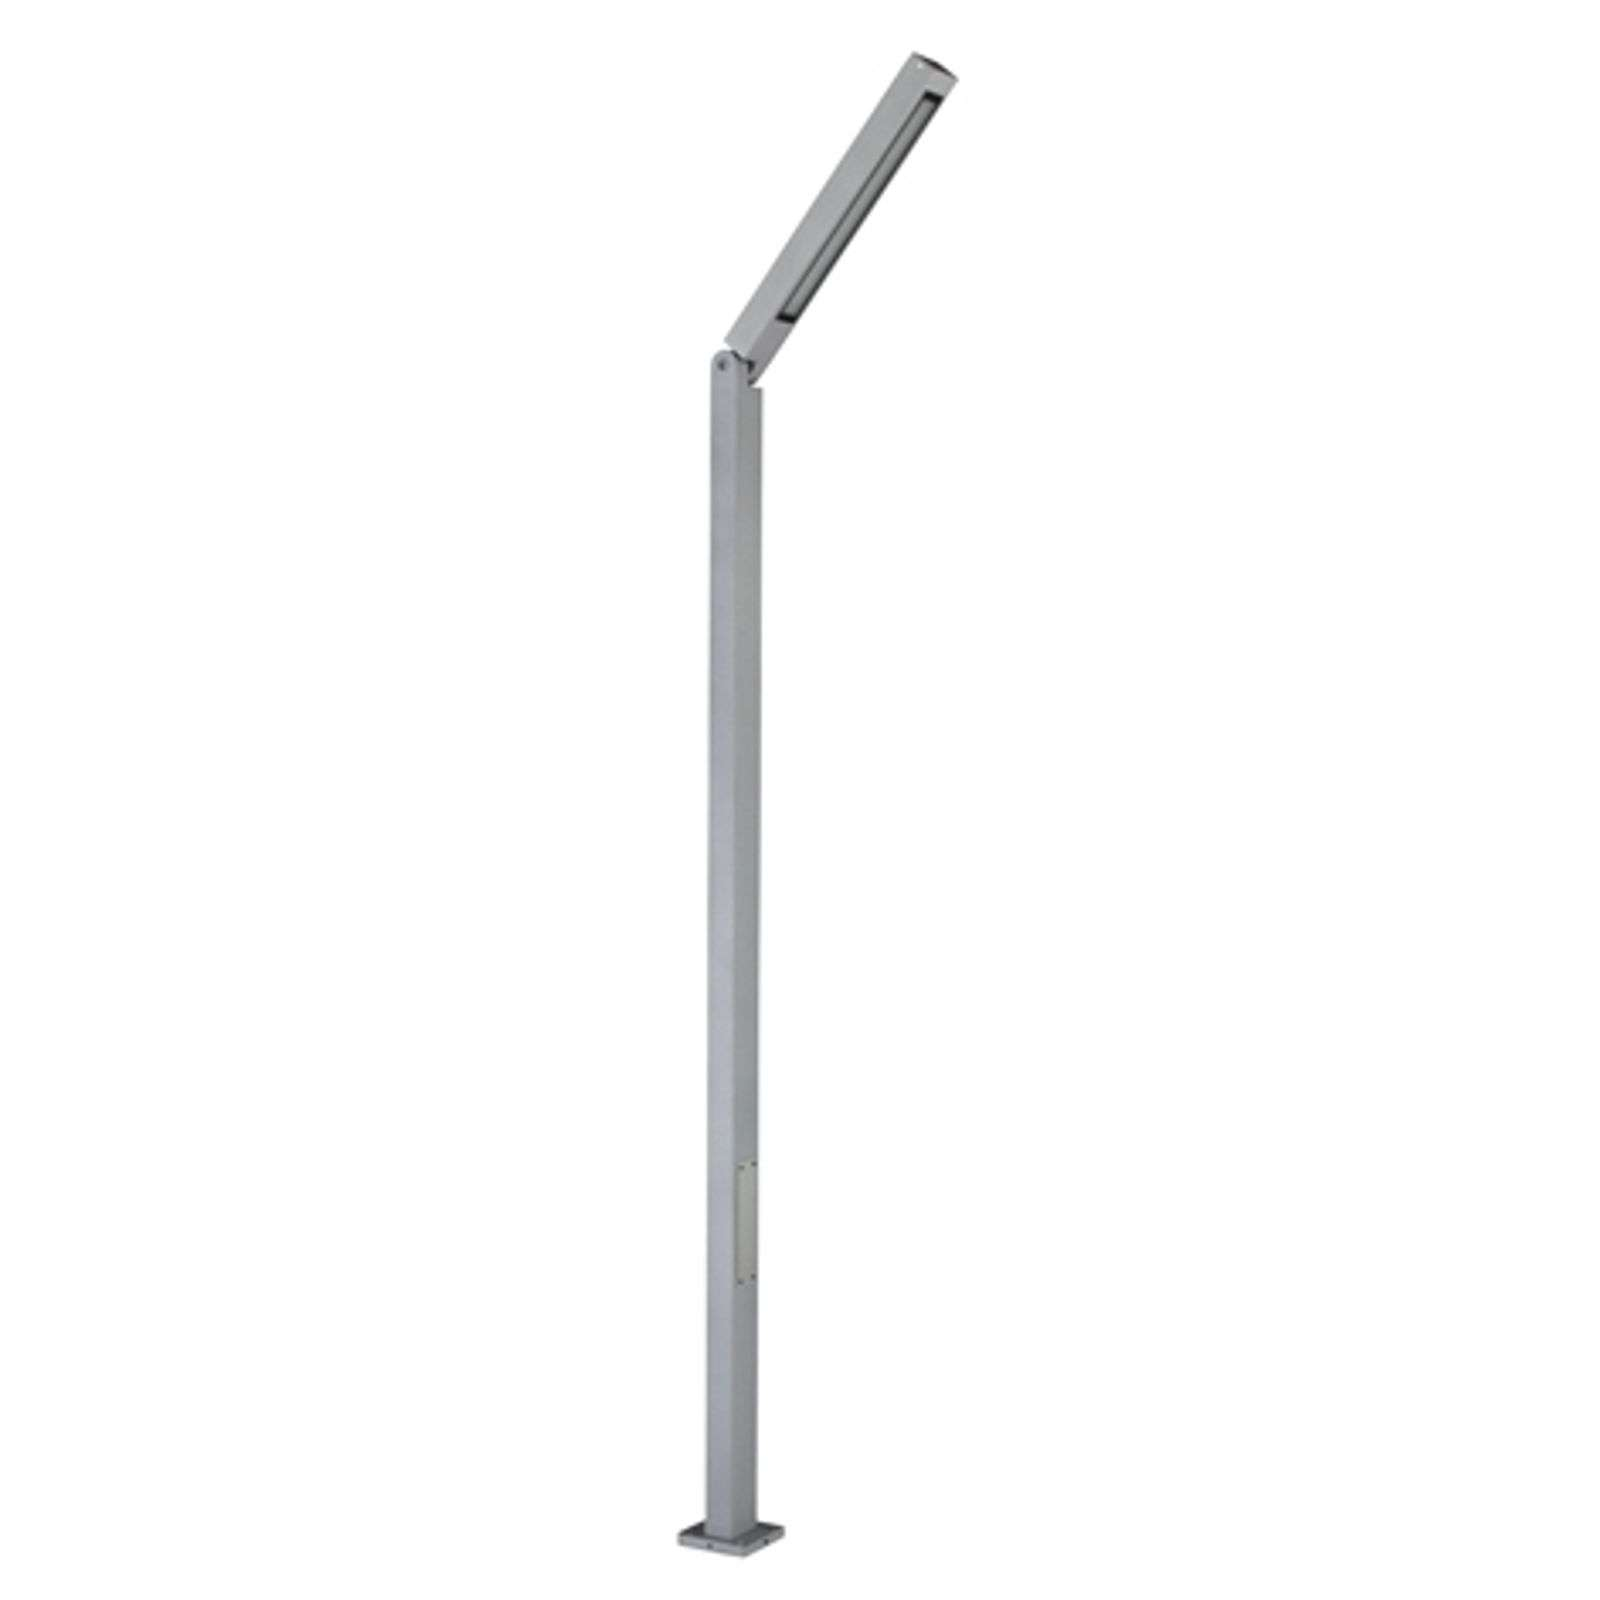 Lampadaire LED power Tiogo inclinable, argent